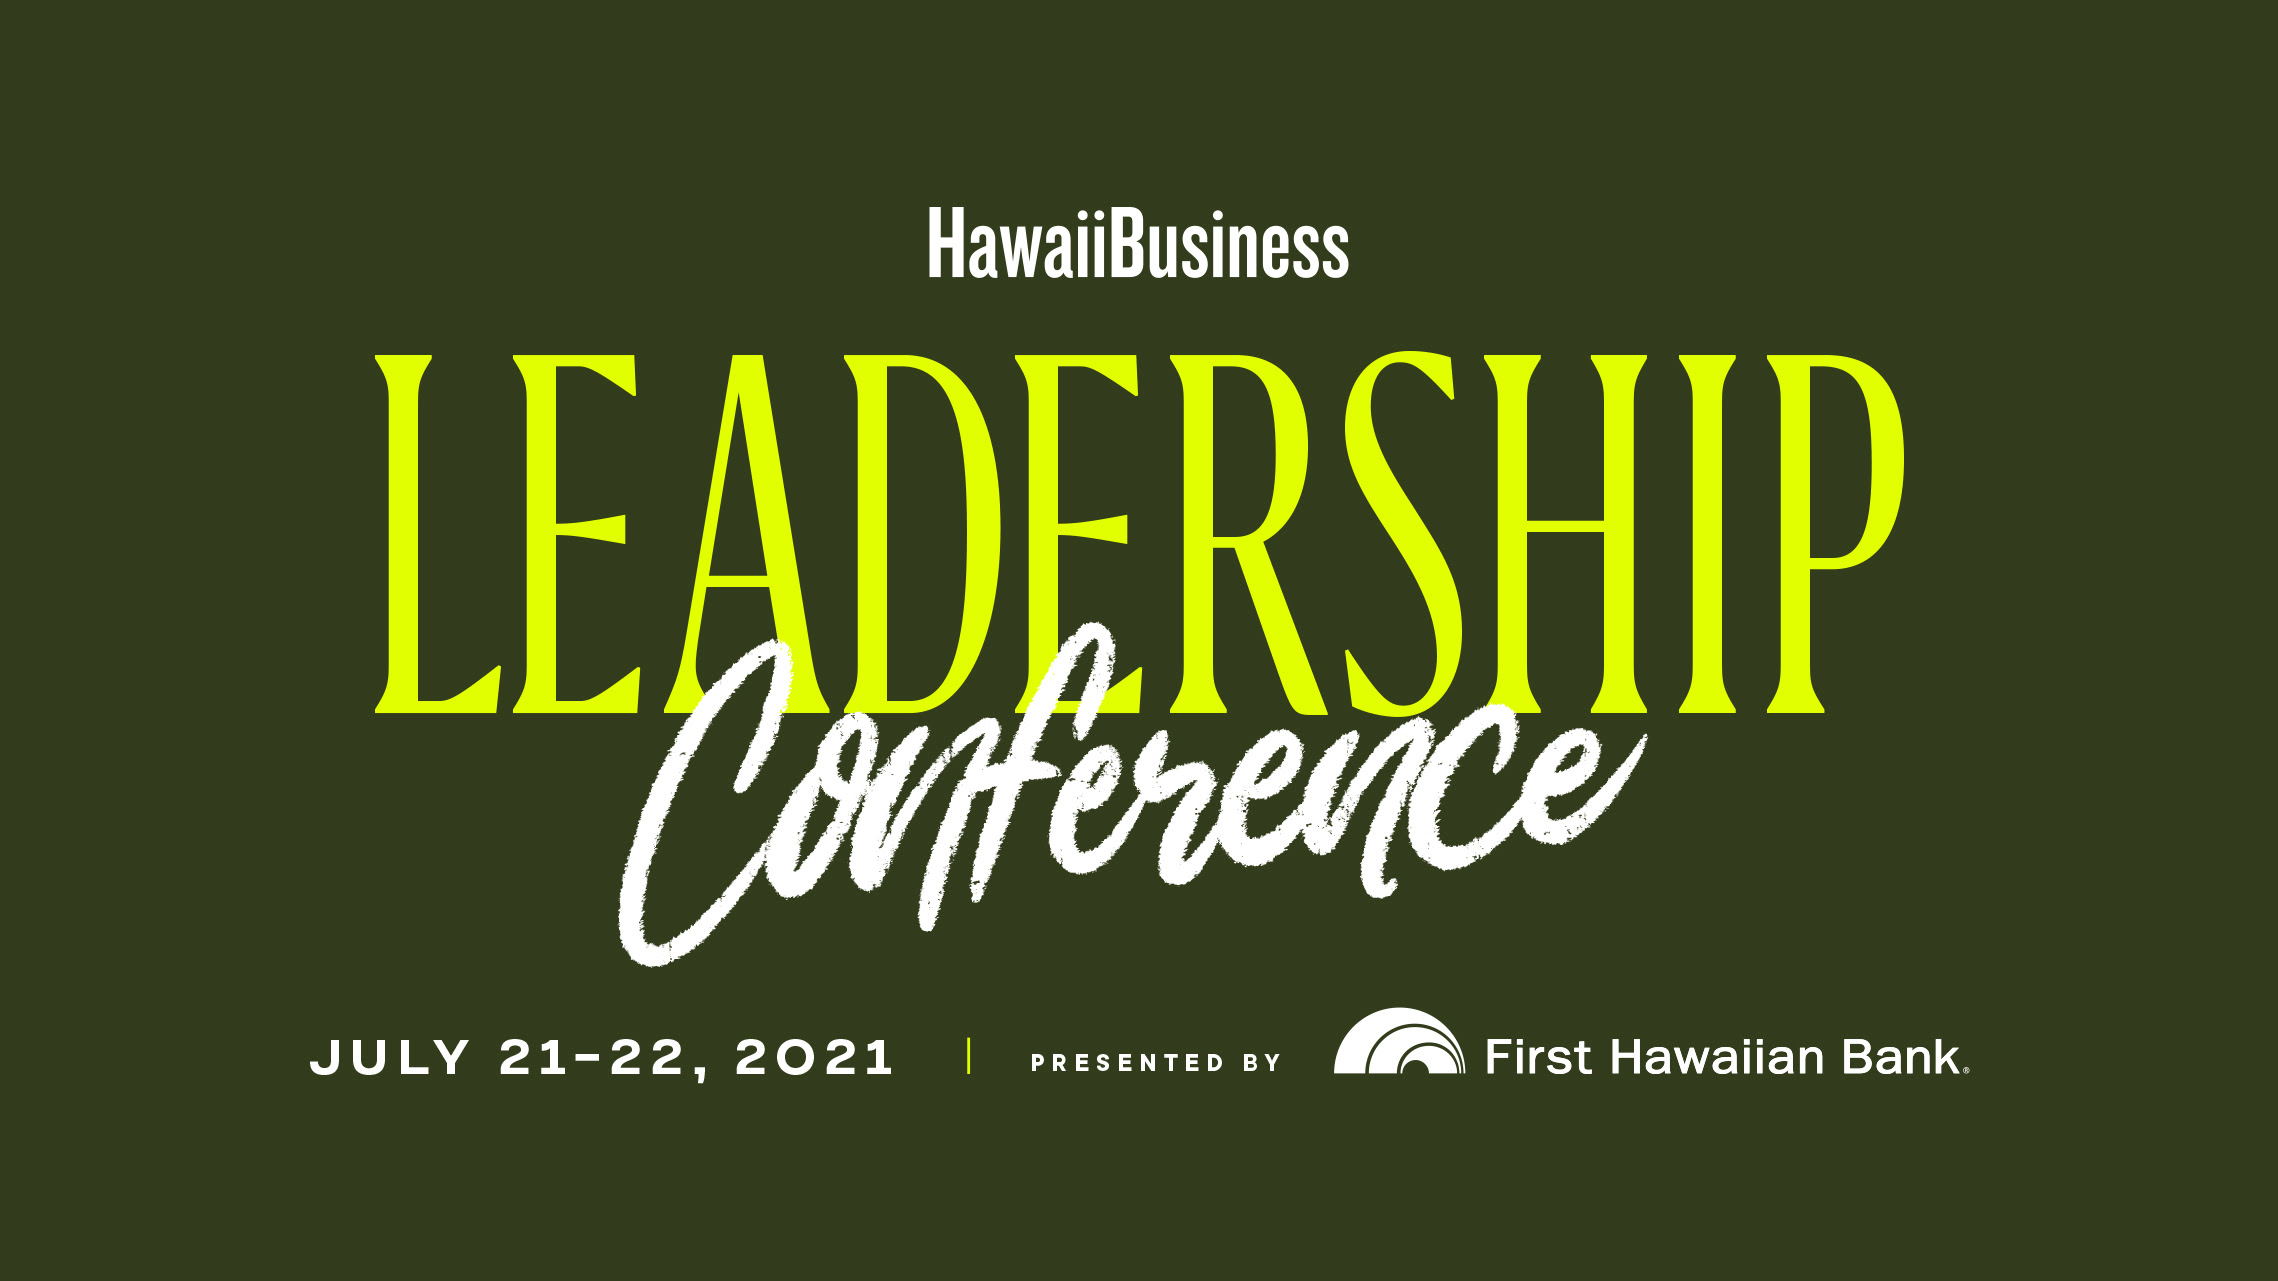 Click here to learn more about this year's Leadership Conference!